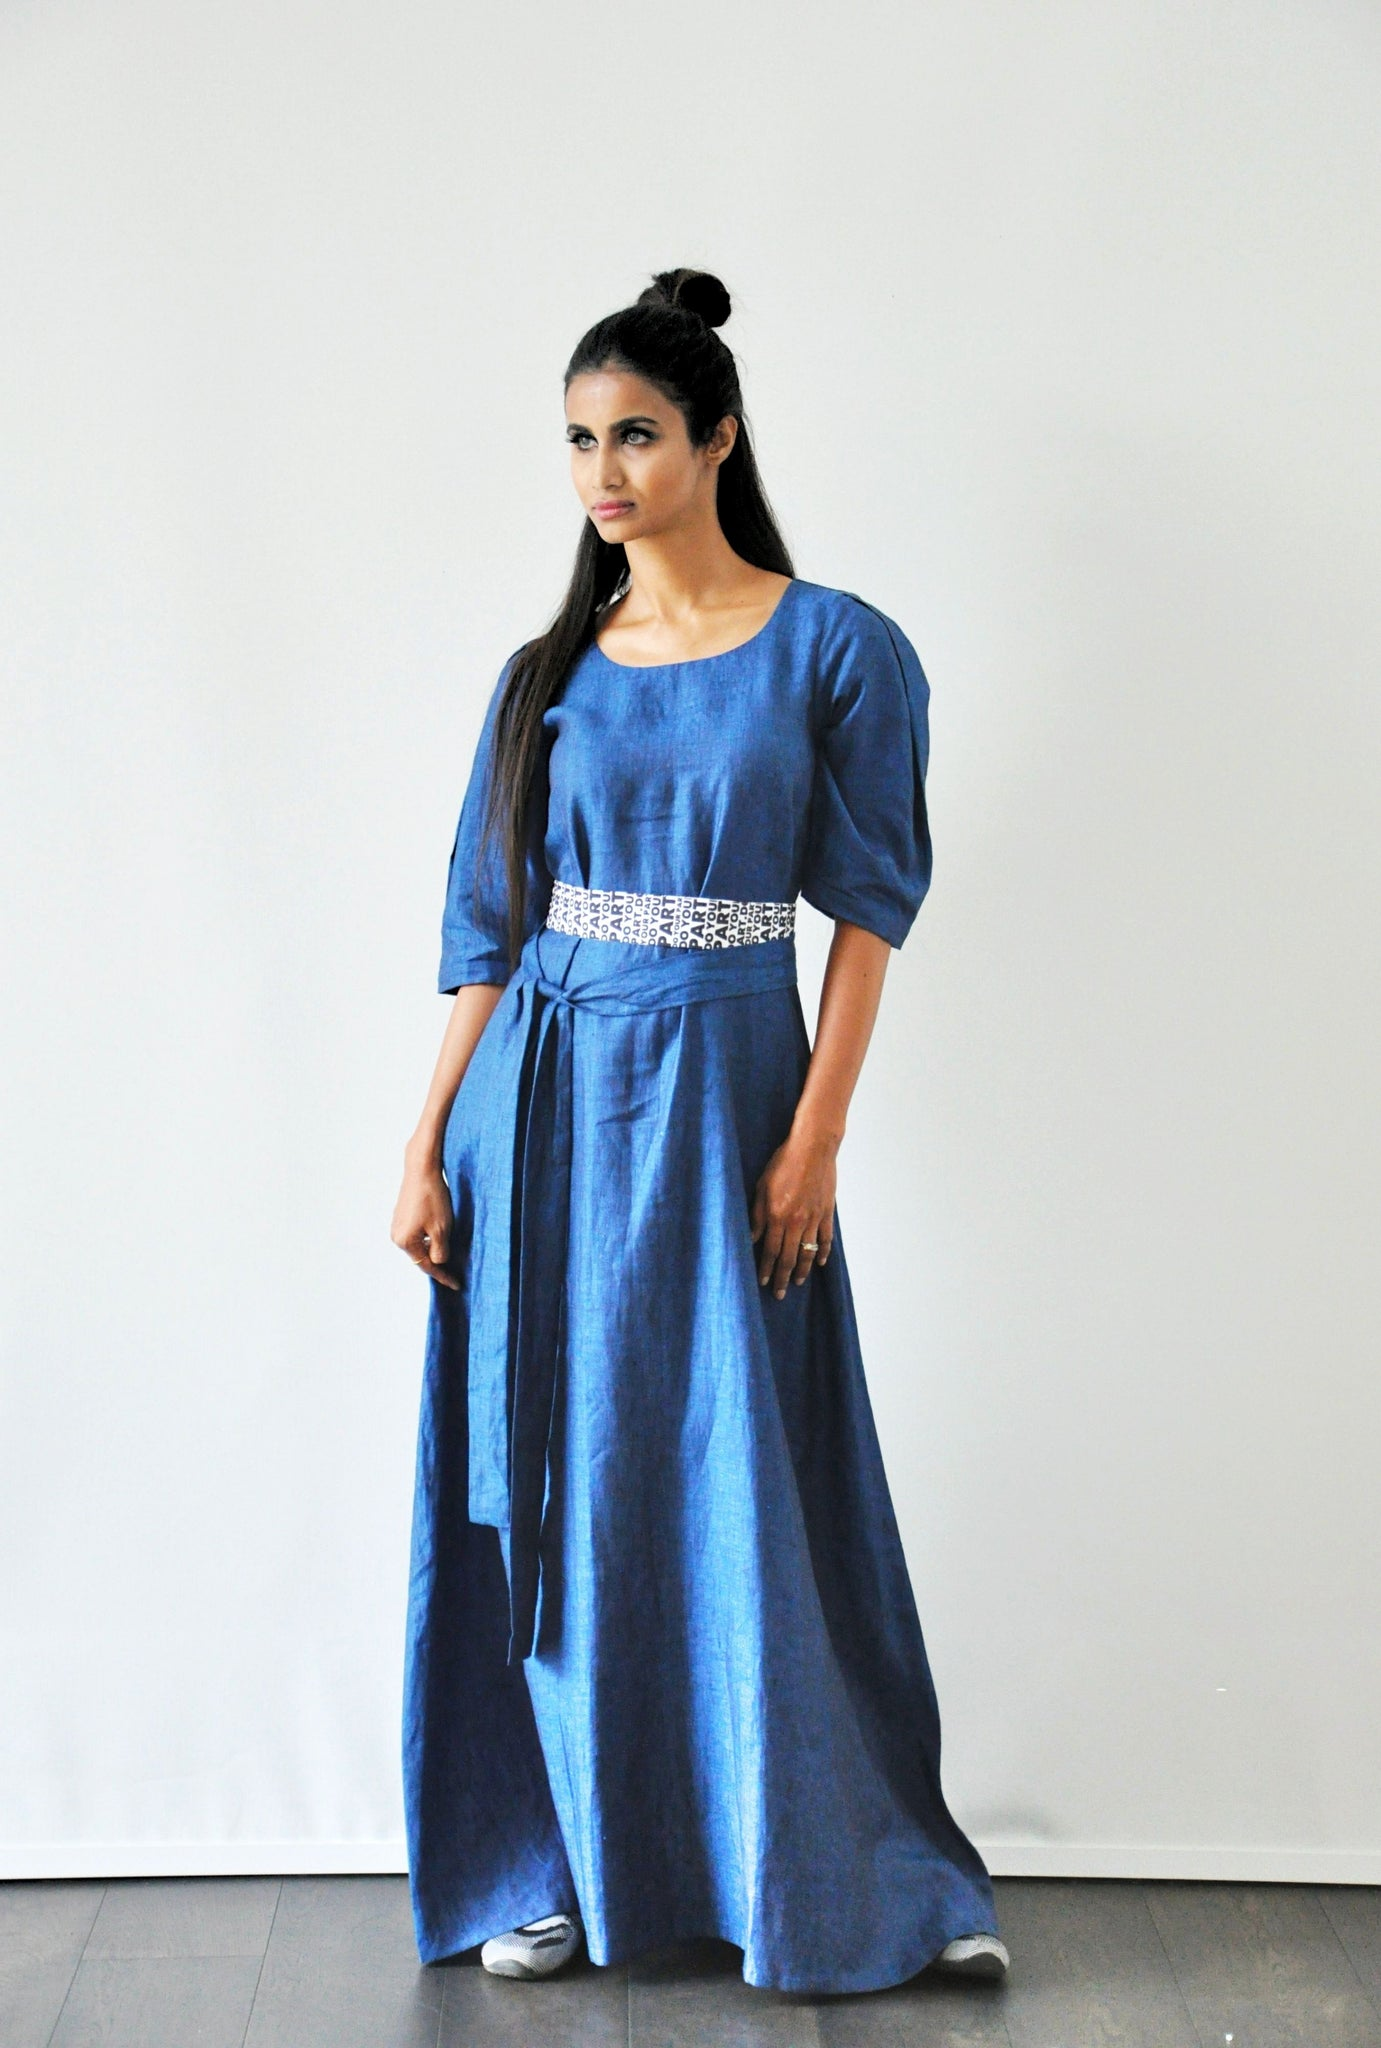 Linen dress with statement belt